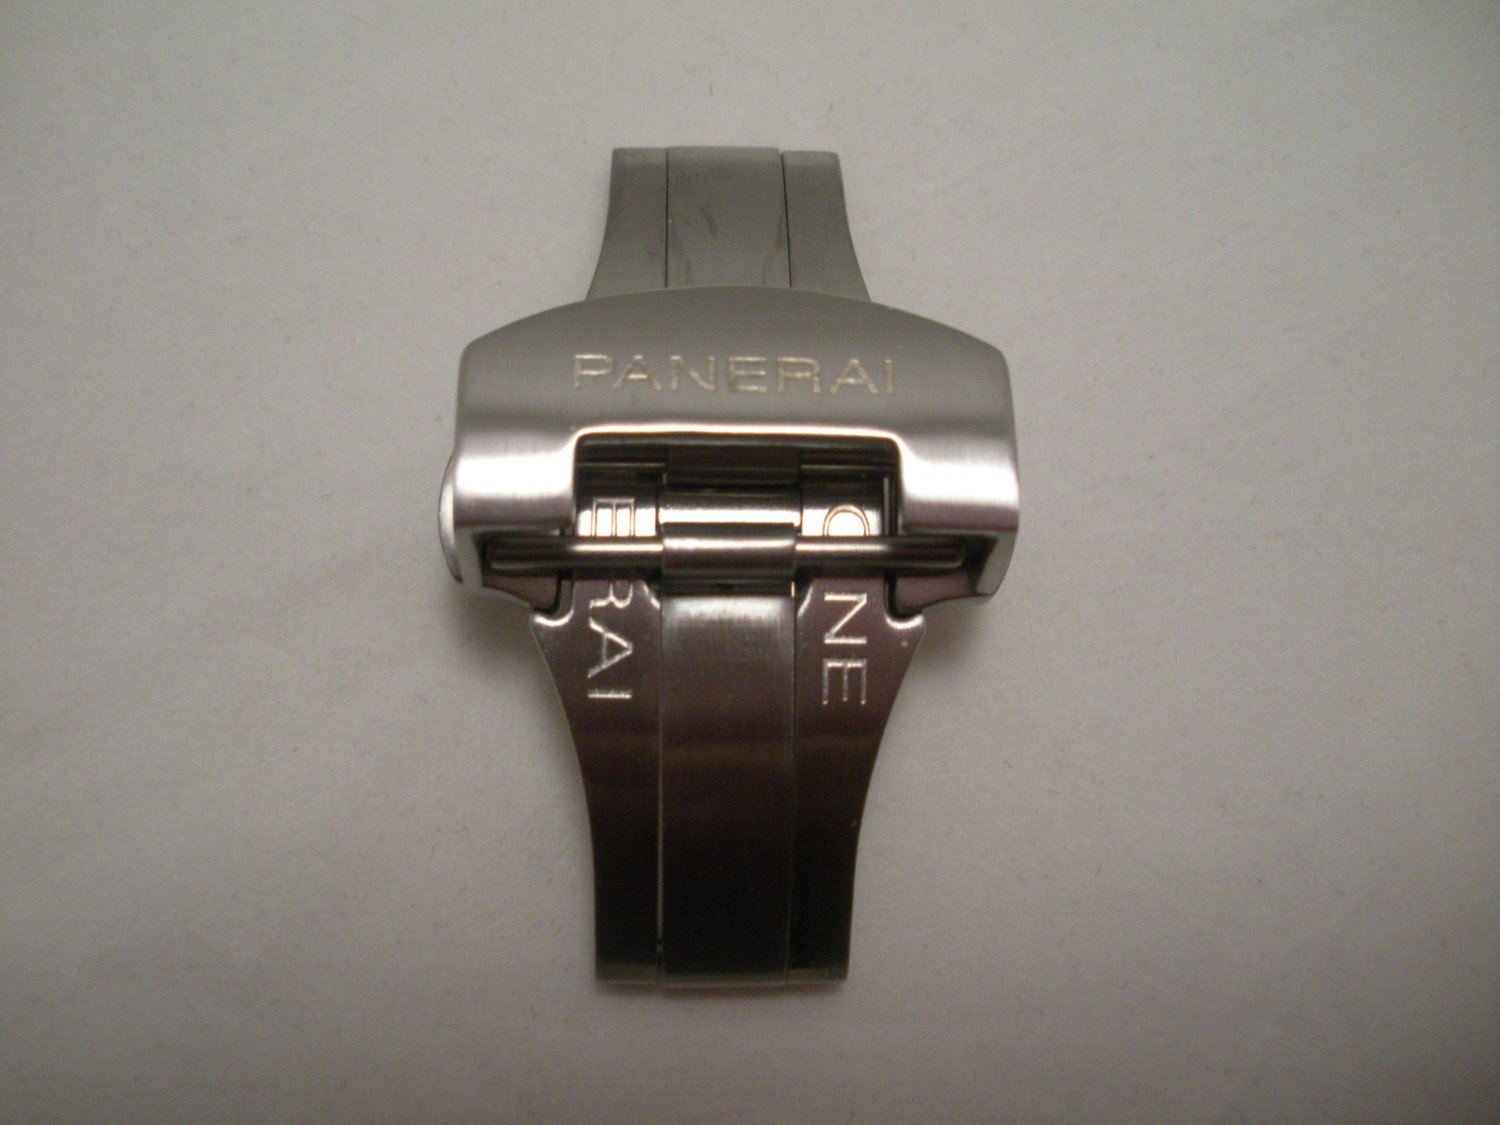 NEW Brushed Stainless Deployment Buckle Clasp for PANERAI